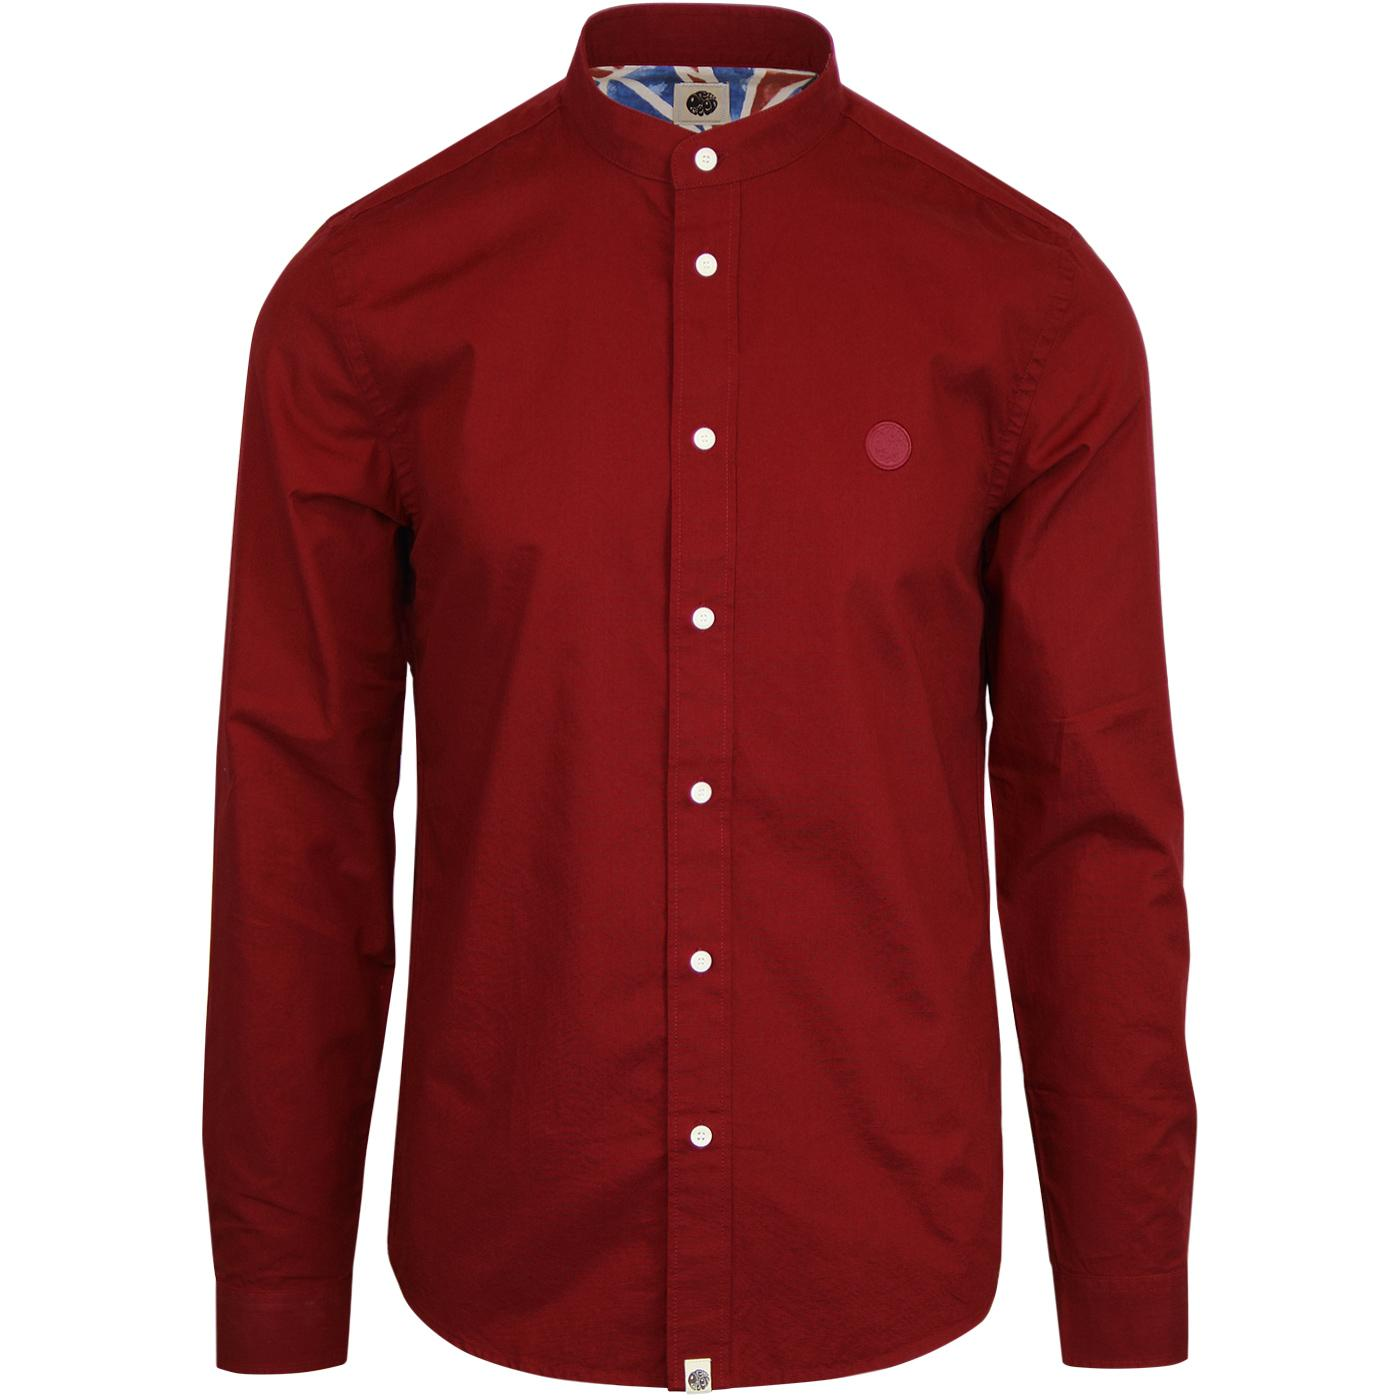 PRETTY GREEN 1960s Mod Grandad Collar Shirt (Red)